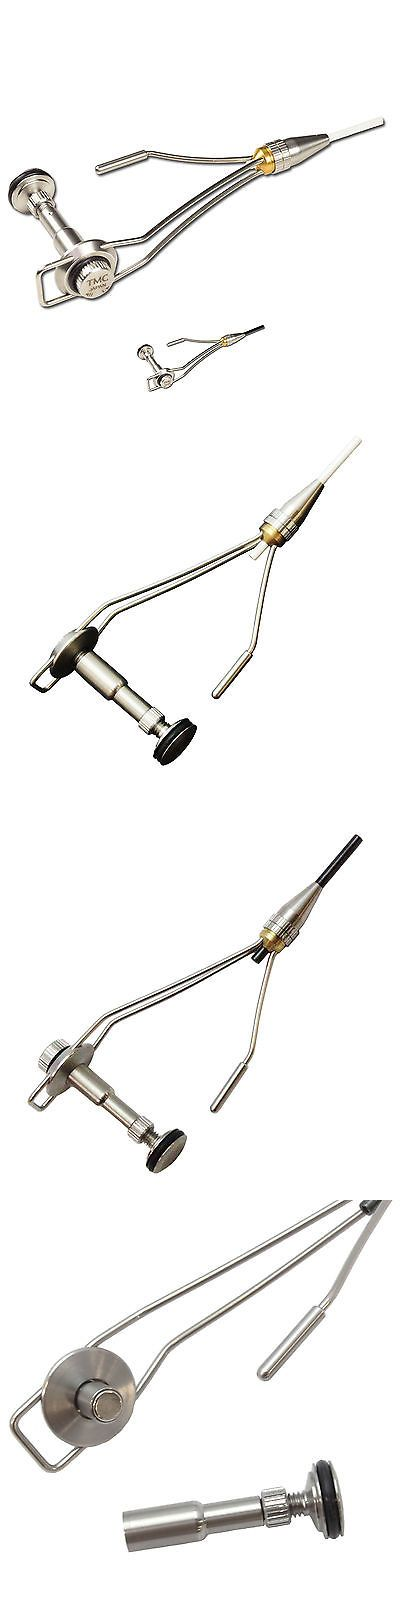 Fly Tying Vises and Tools 44916: Tiemco Adjustable Magnetic Bobbin With Vertically Adjustable Ceramic Tube -> BUY IT NOW ONLY: $99.95 on eBay!